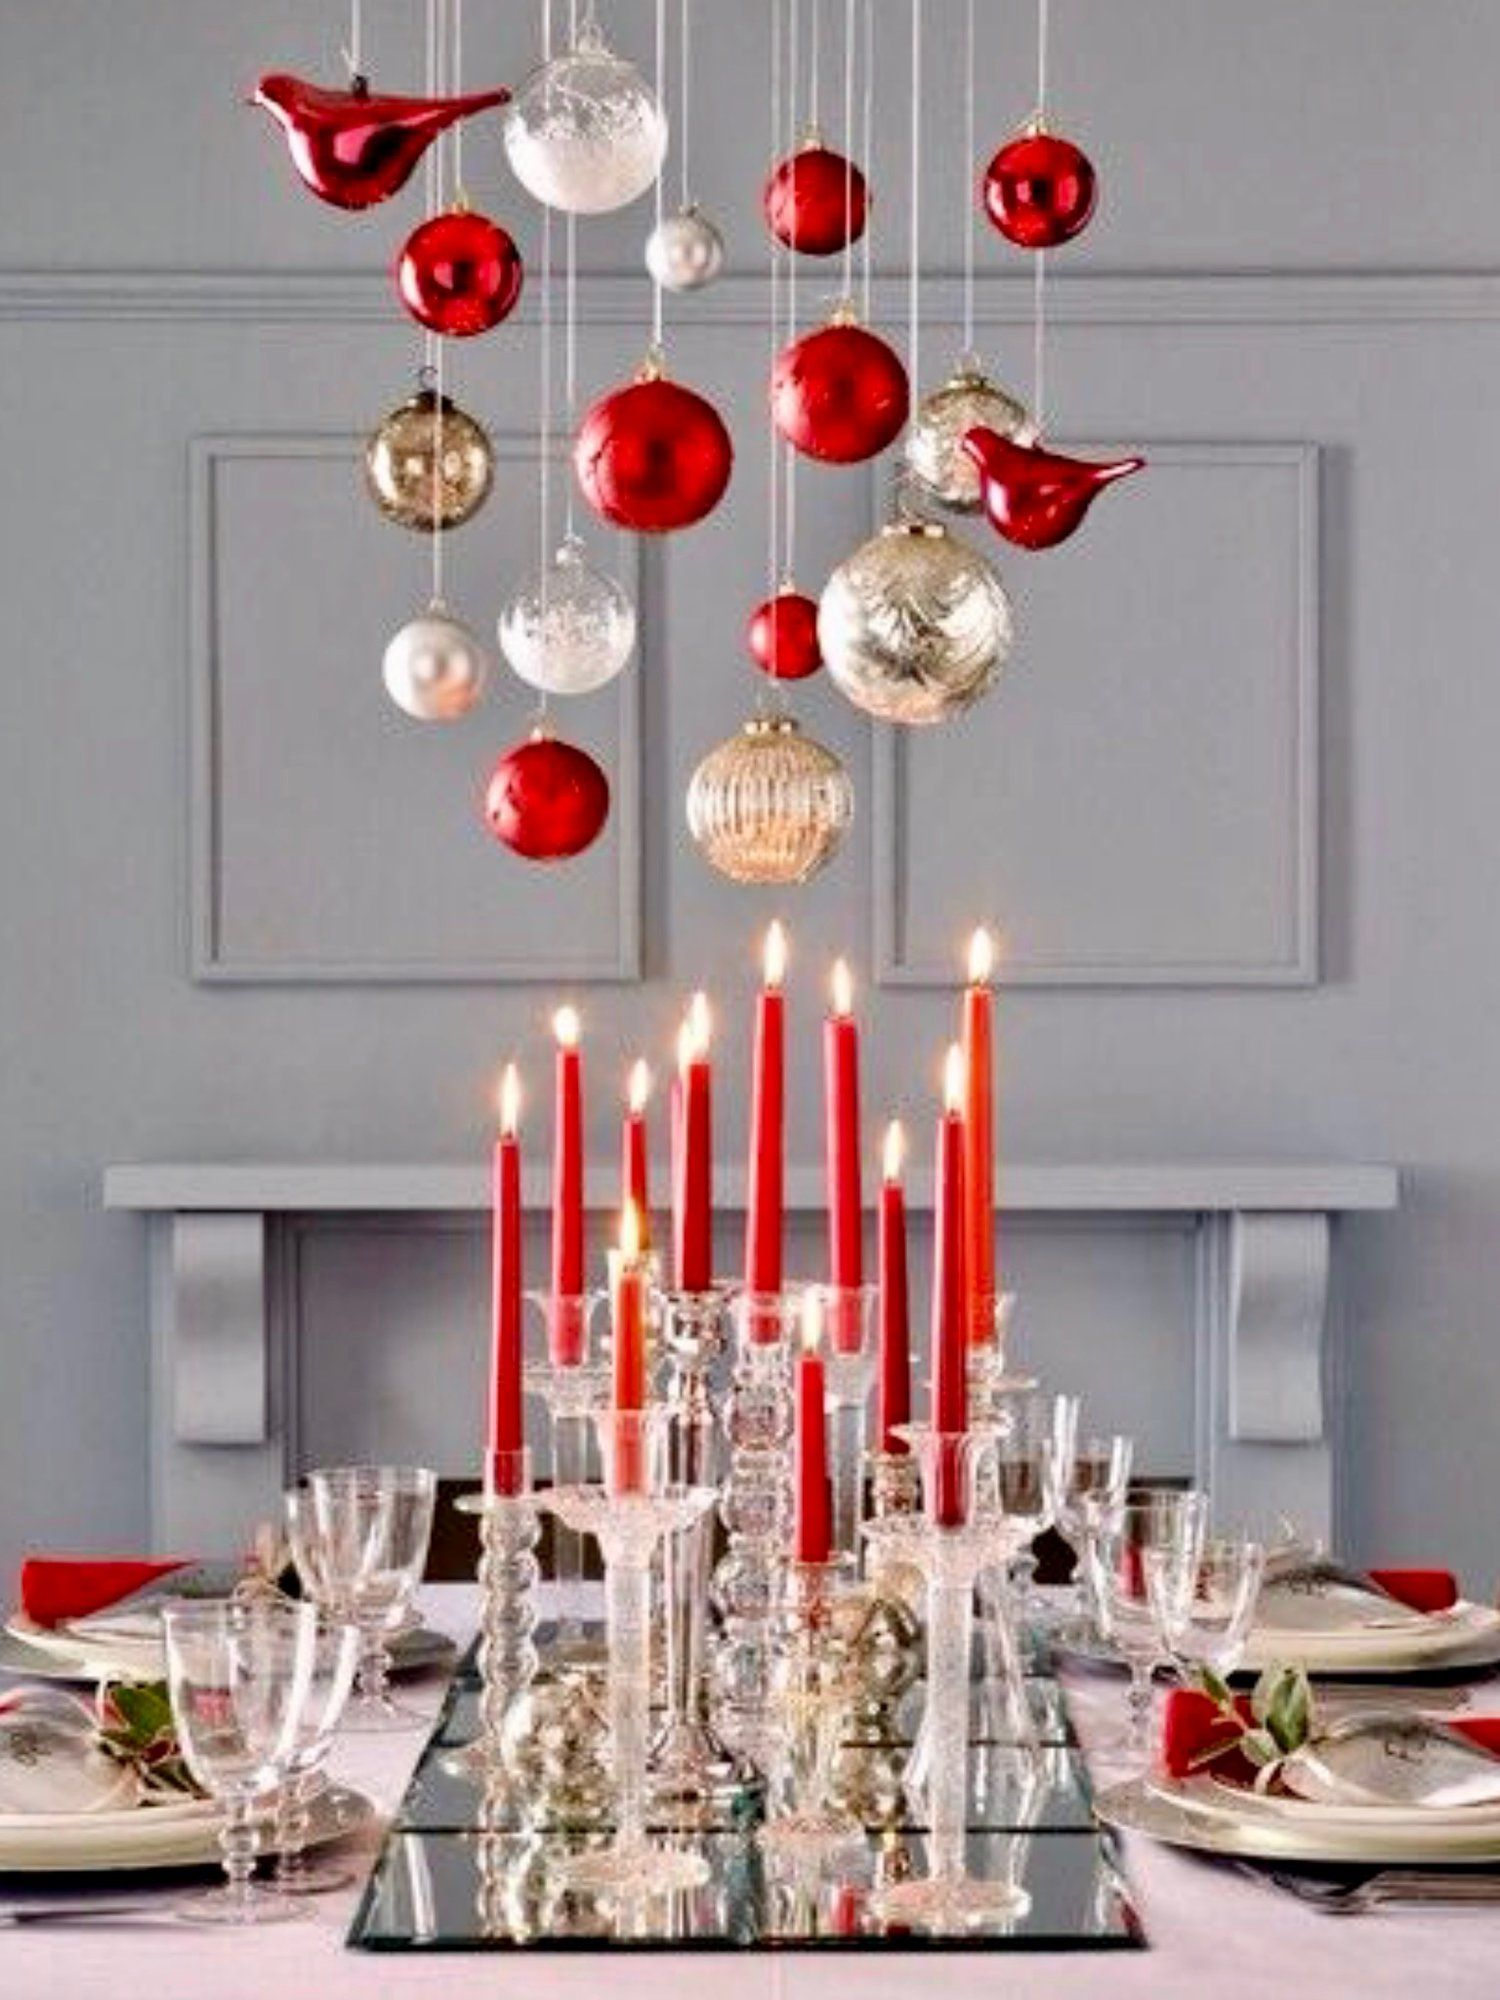 Top 150 Christmas Tables 1 5 🎄 Christmas Tables